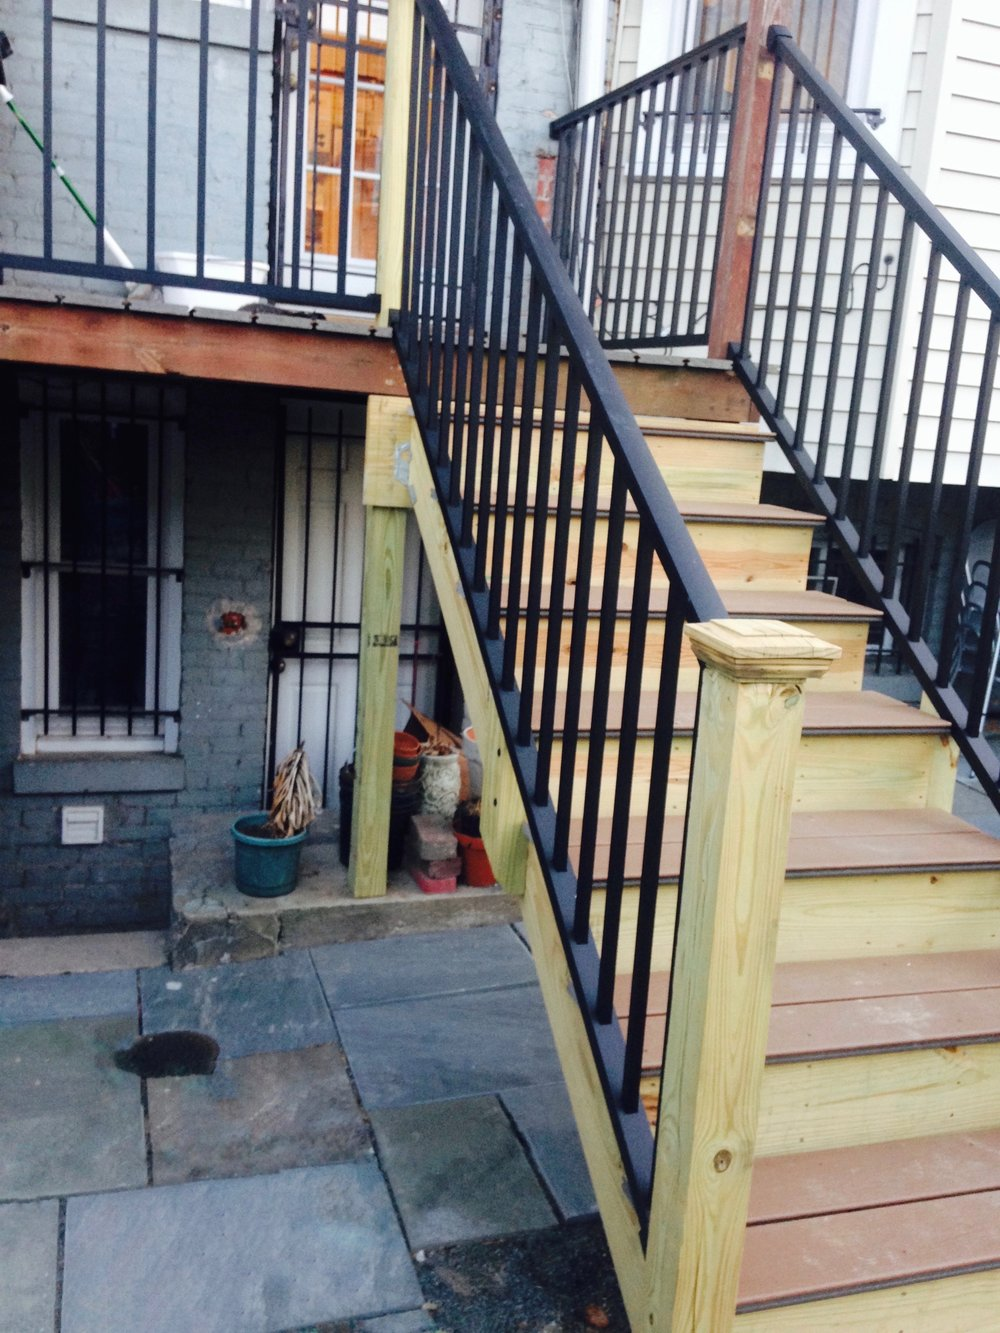 Brand new stairs and railing connect both outdoor levels of this house